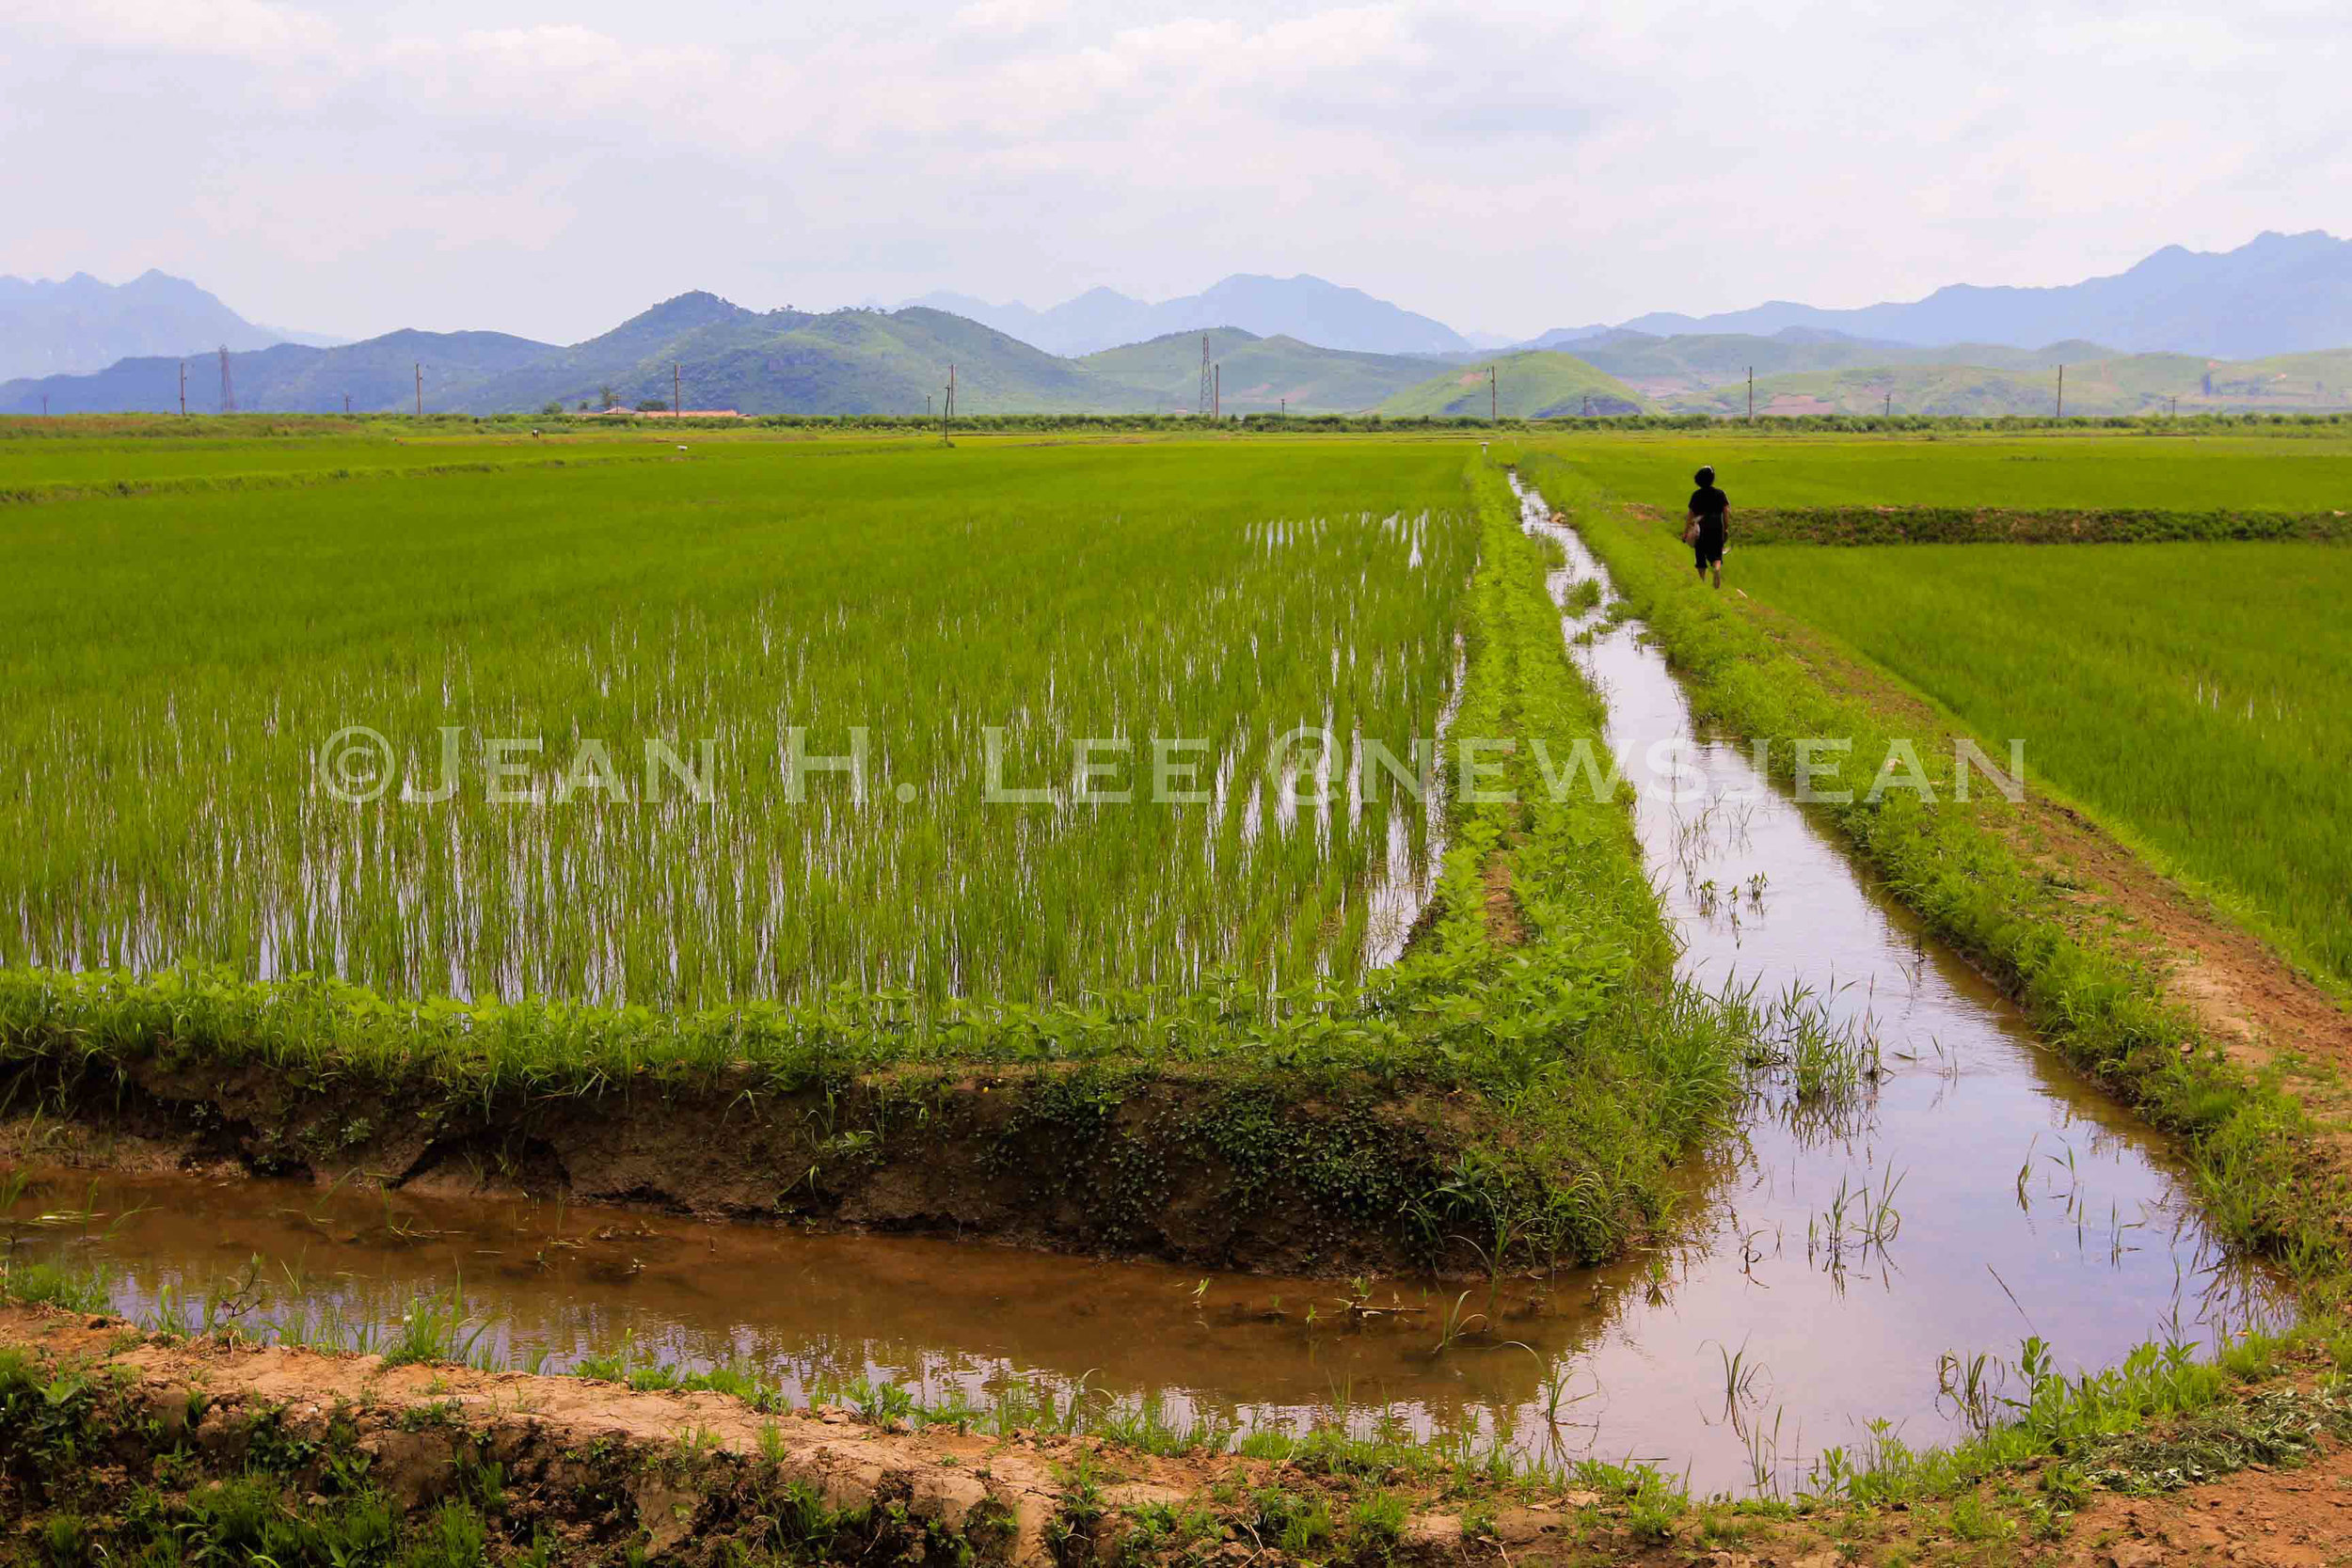 Jean Lee-NKorea-Farm-1-.jpg